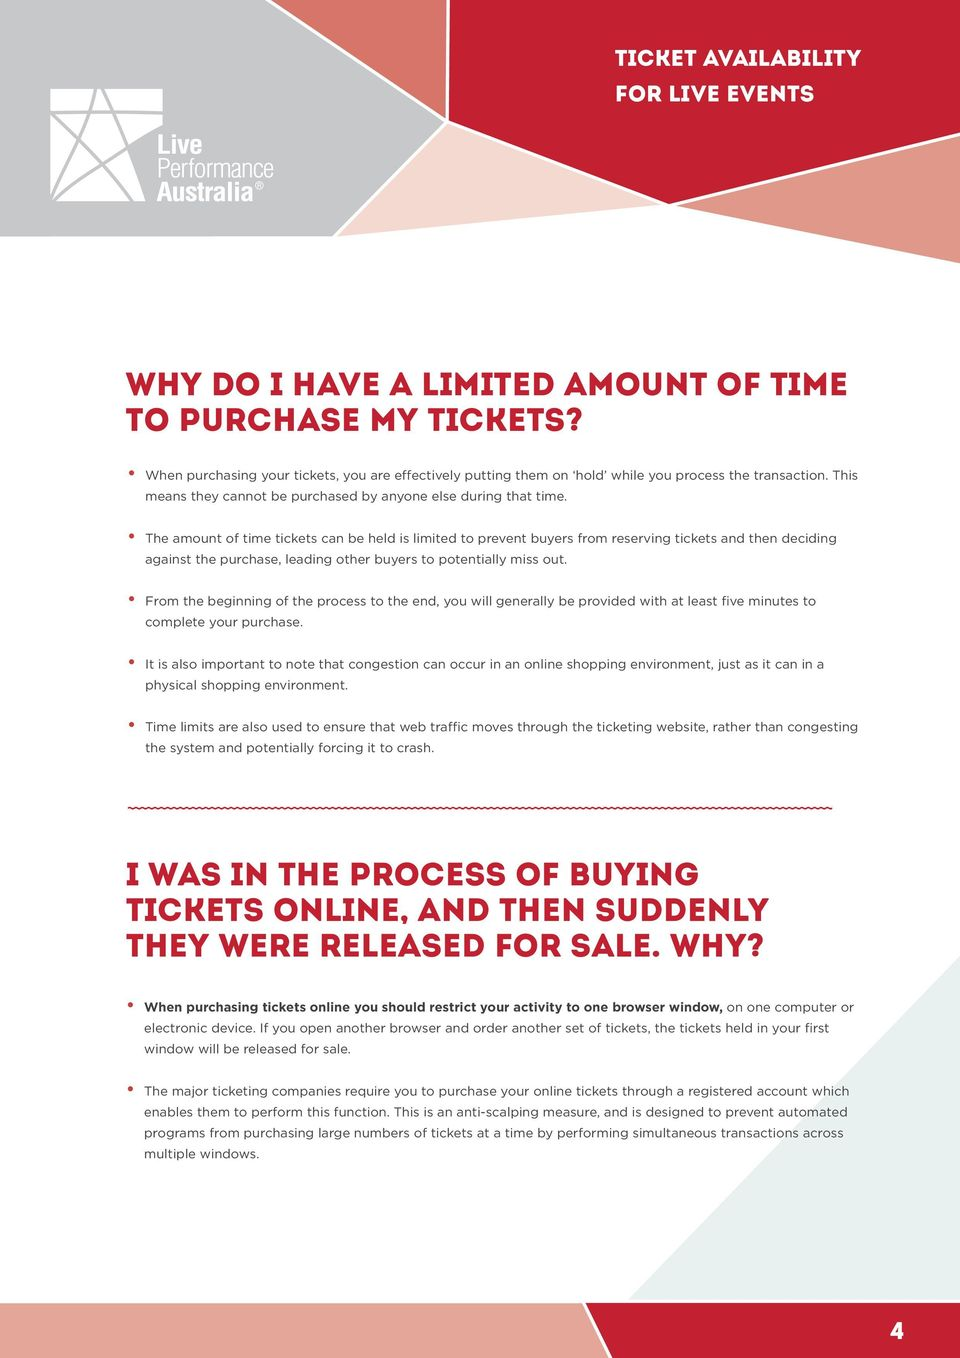 The amount of time tickets can be held is limited to prevent buyers from reserving tickets and then deciding against the purchase, leading other buyers to potentially miss out.